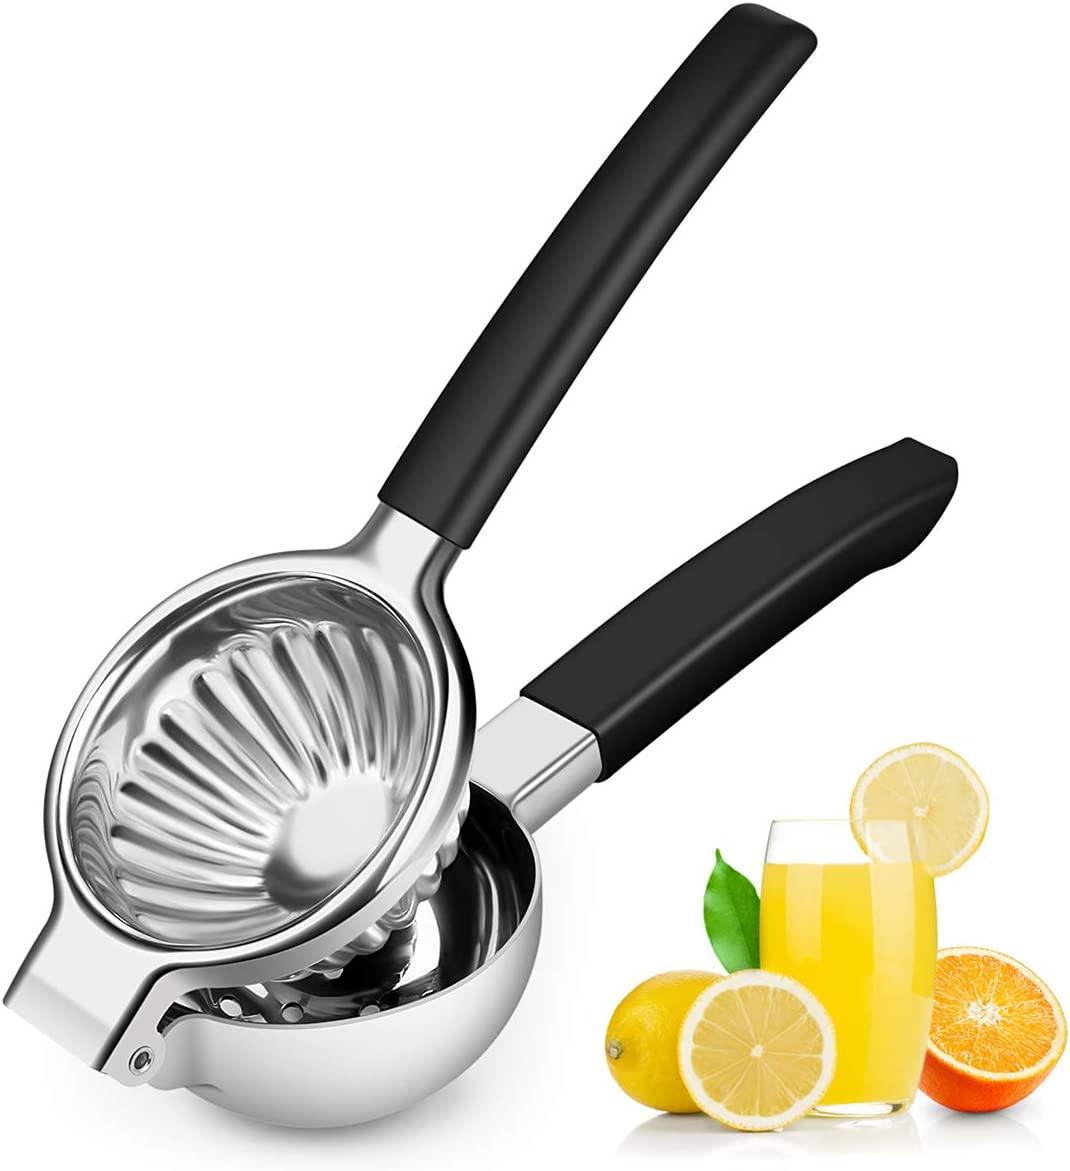 Lemon Squeezer | for Lime and Citrus | Hand Press Juicer Stainless Steel | Premium Quality - with Silicon Handle